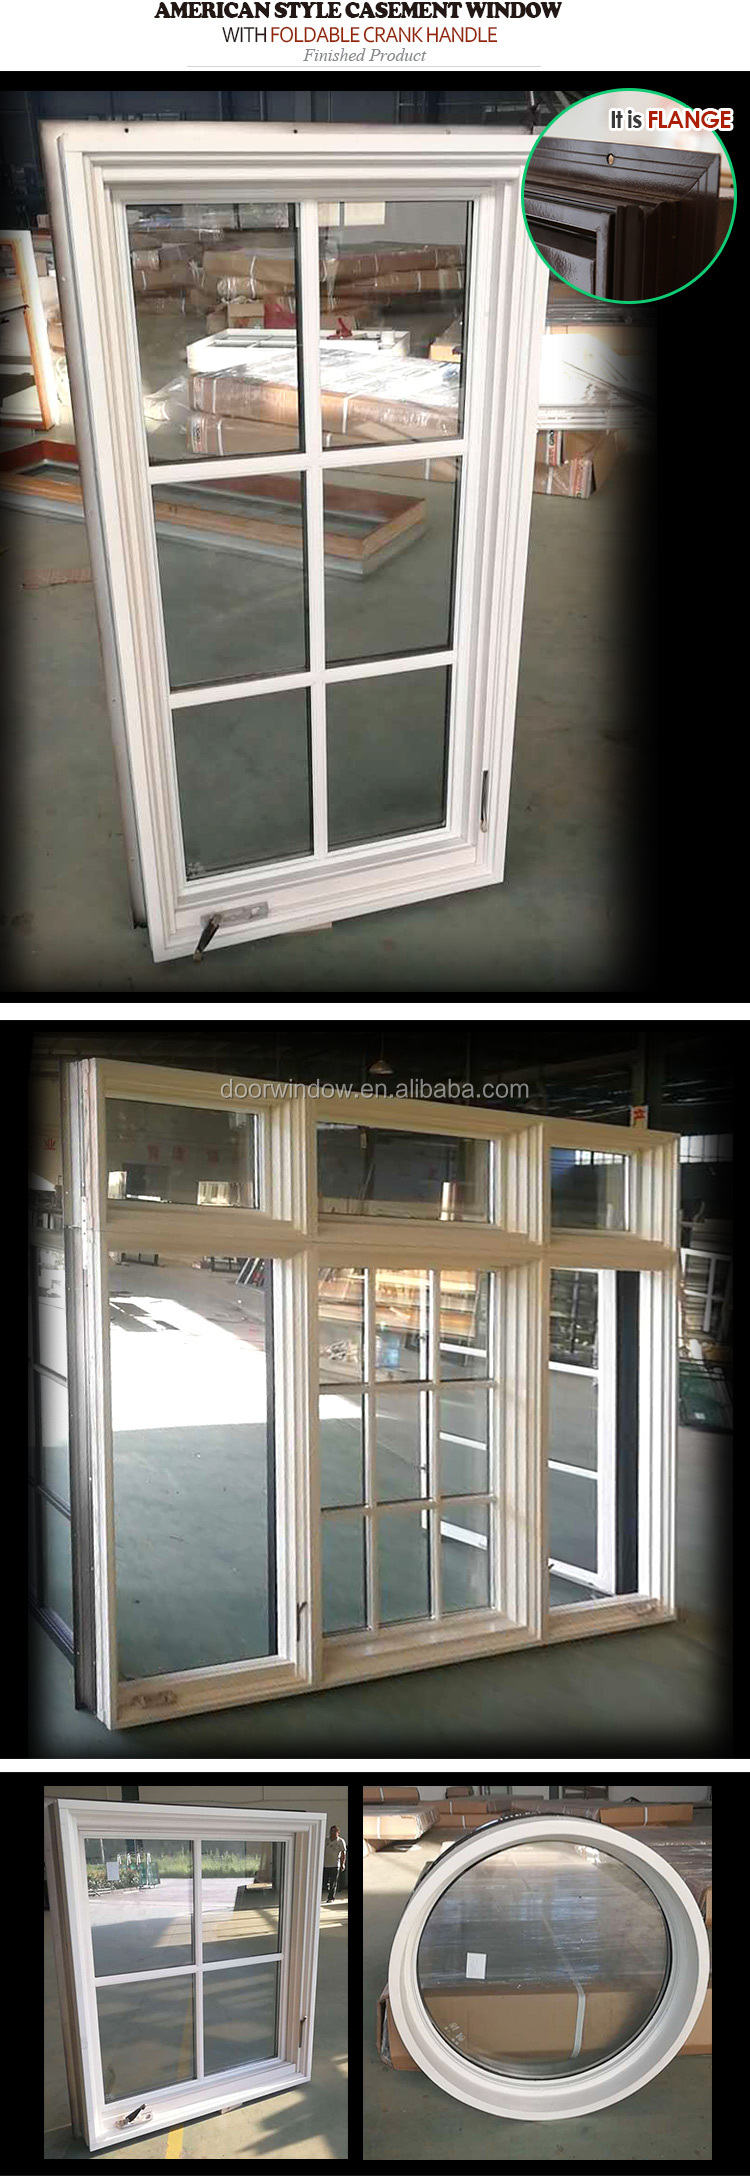 Virginia cheap aluminium crank windows 36 x36 casement window for sale